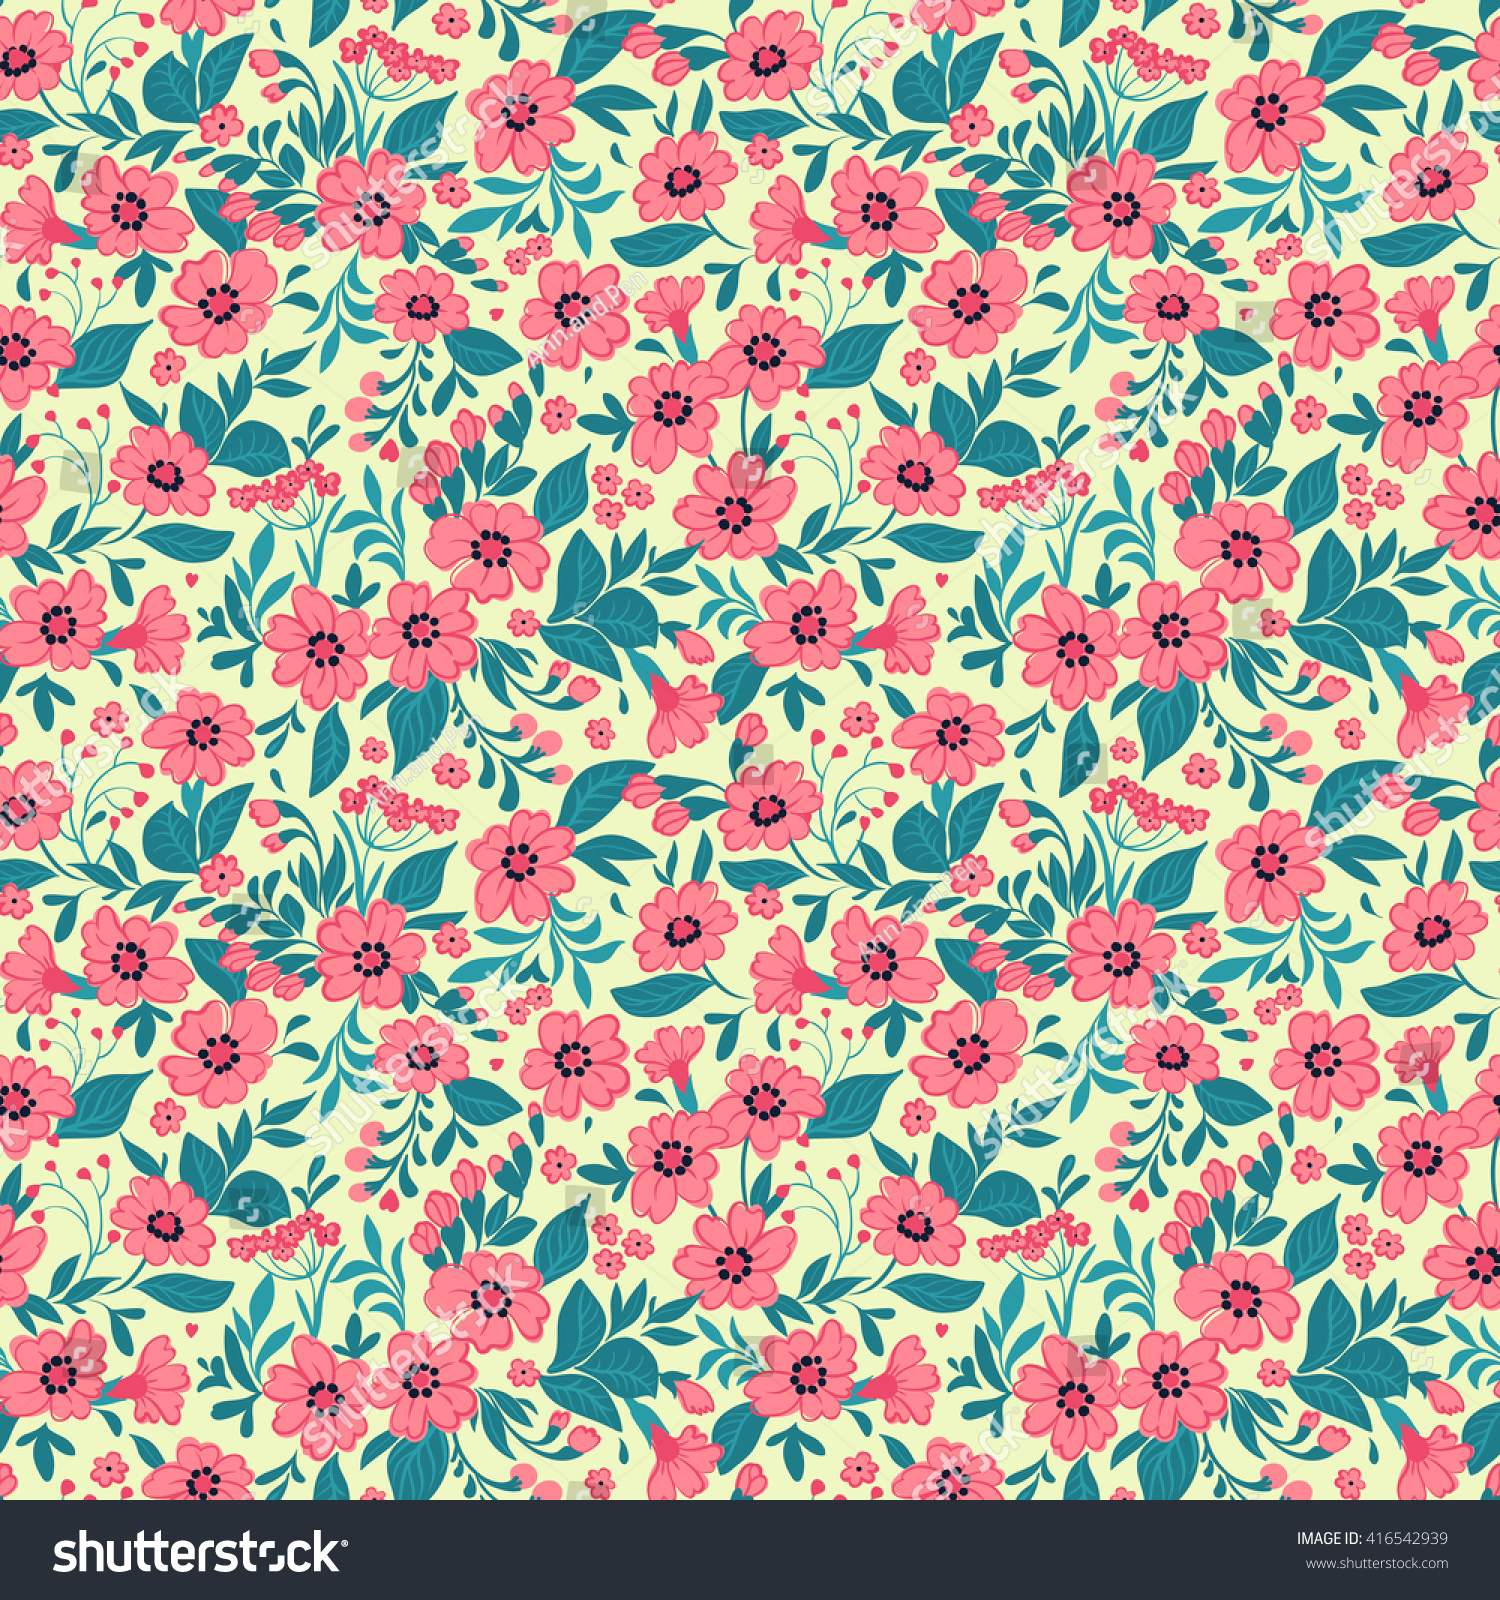 Cute Pattern In Small Pink Flowers Yellow Background Spring Floral